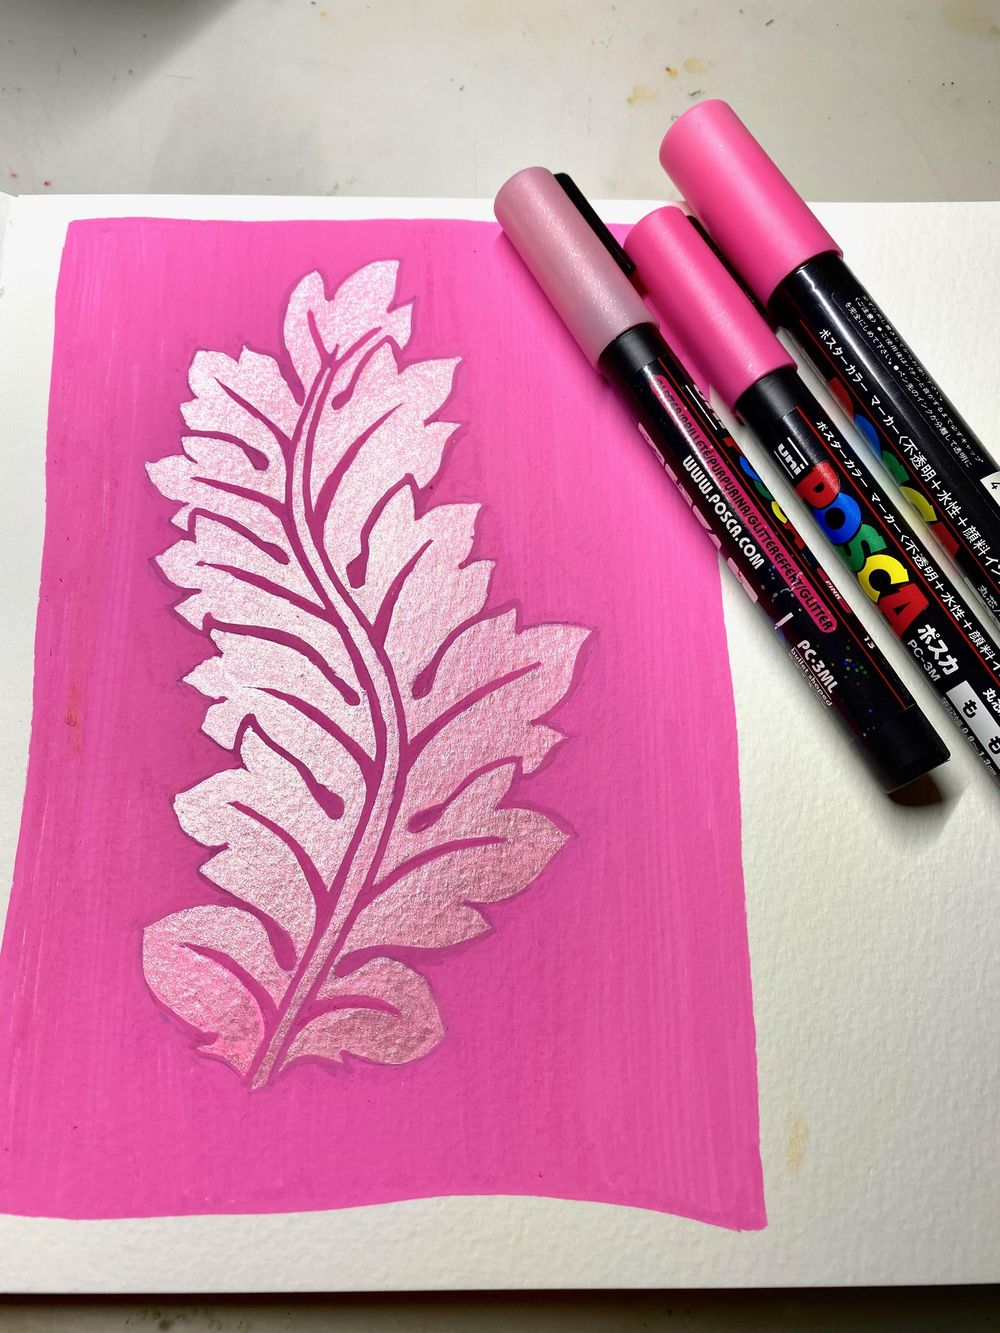 Classic Damask Patterns - image 2 - student project